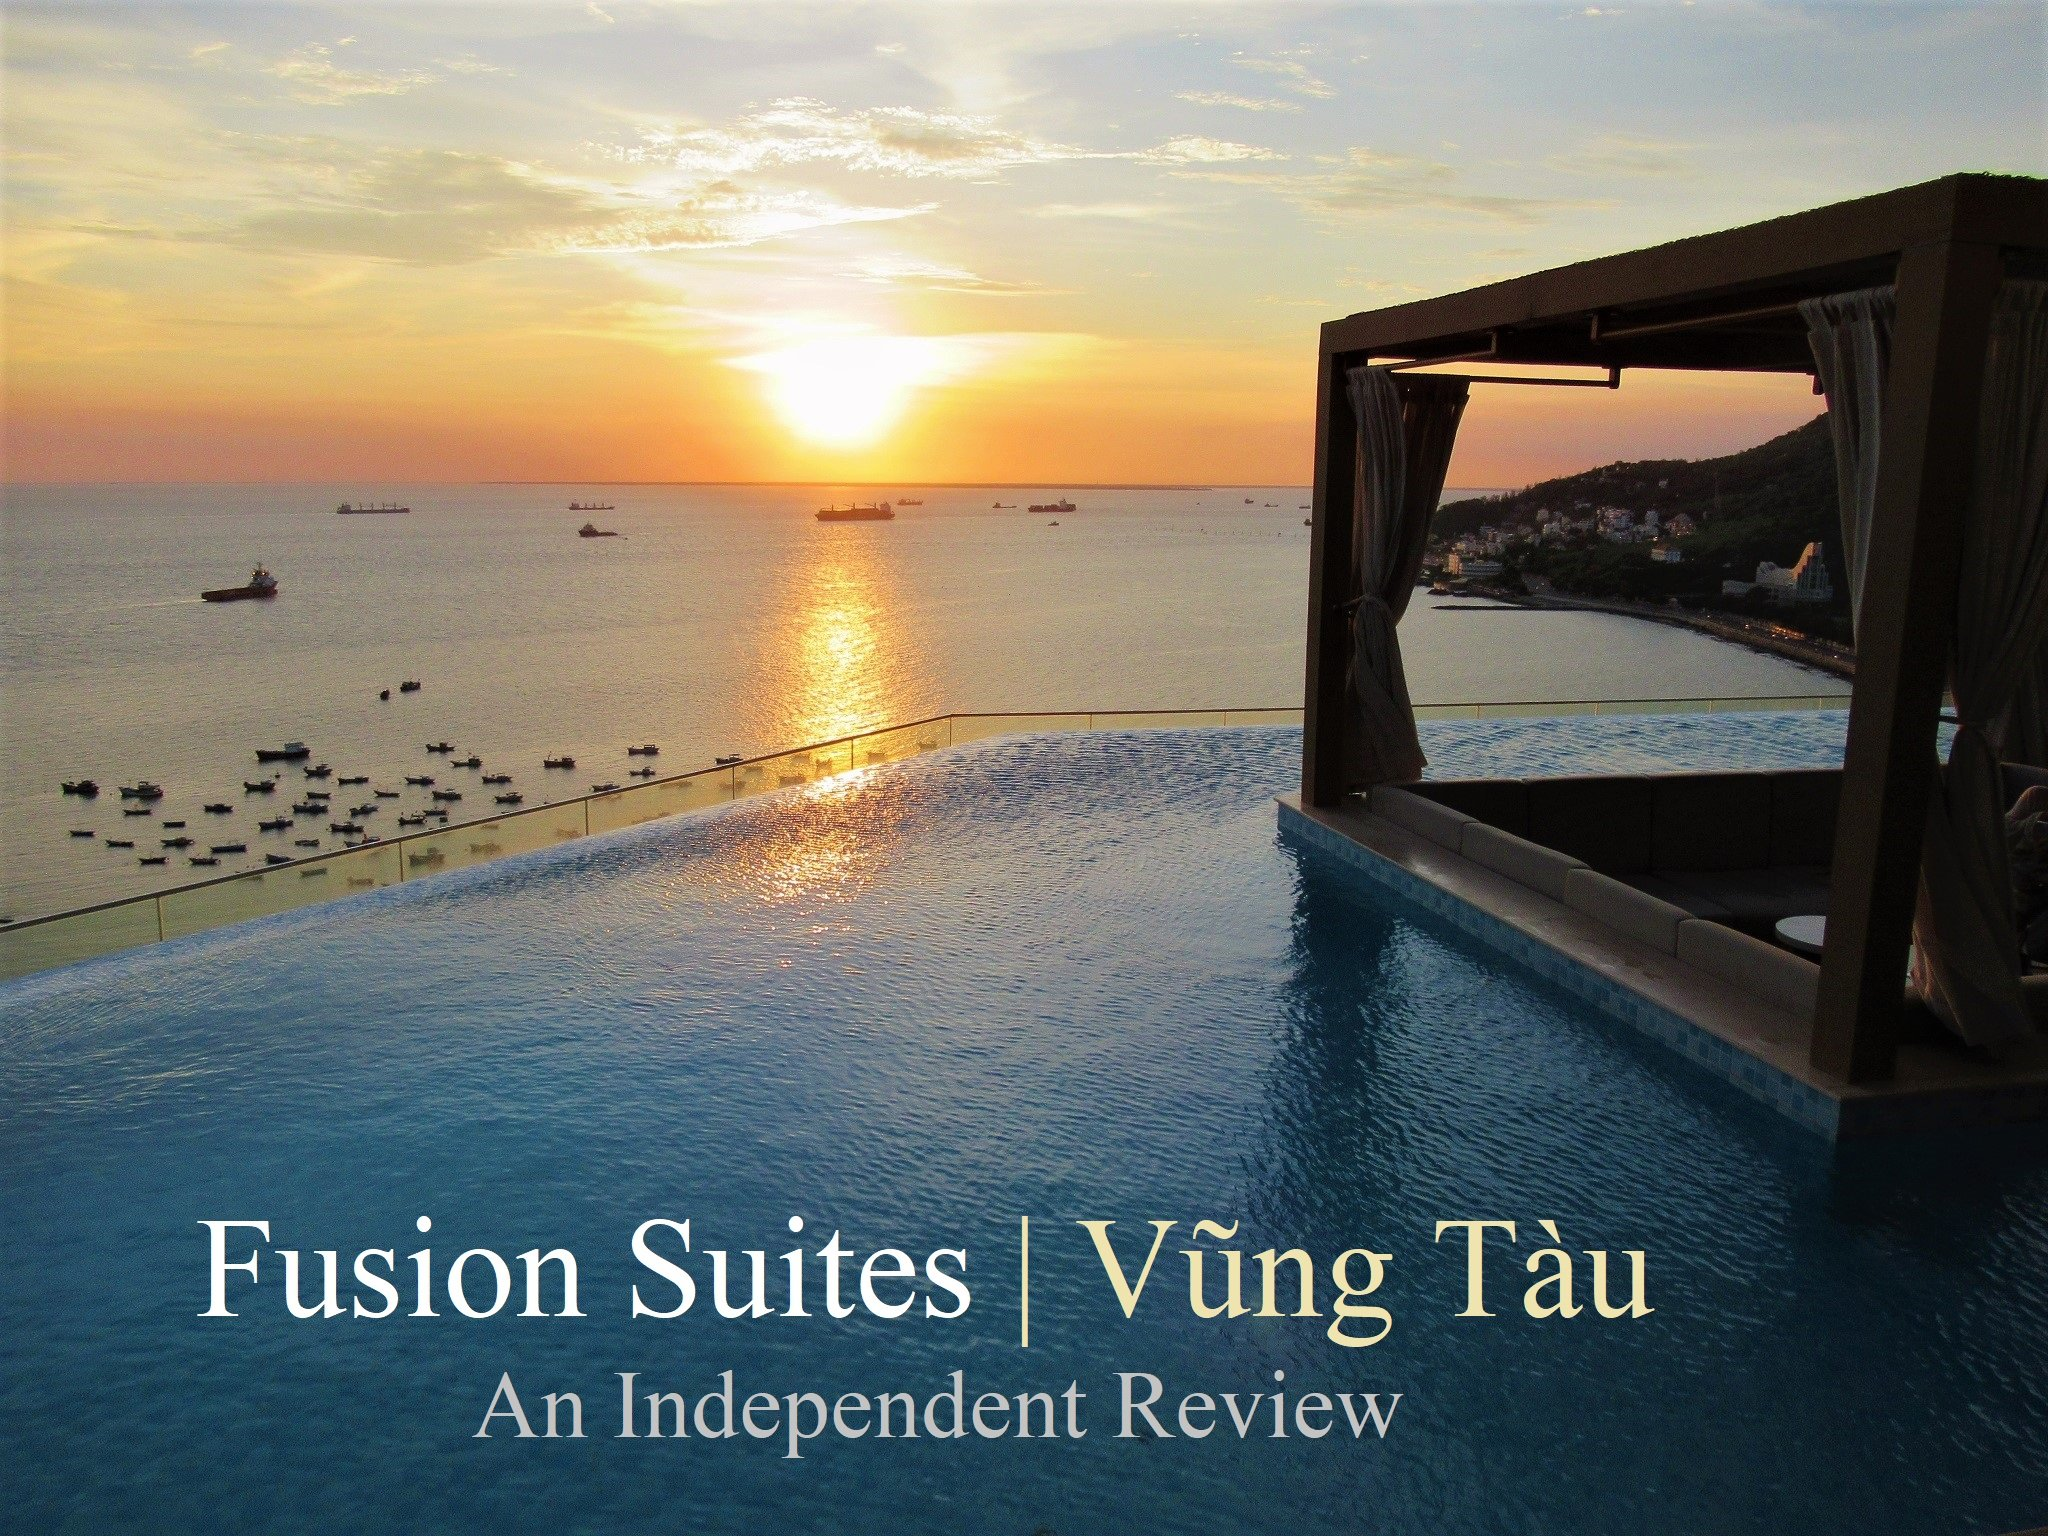 Fusion Suites Vung Tau, An Independent Review